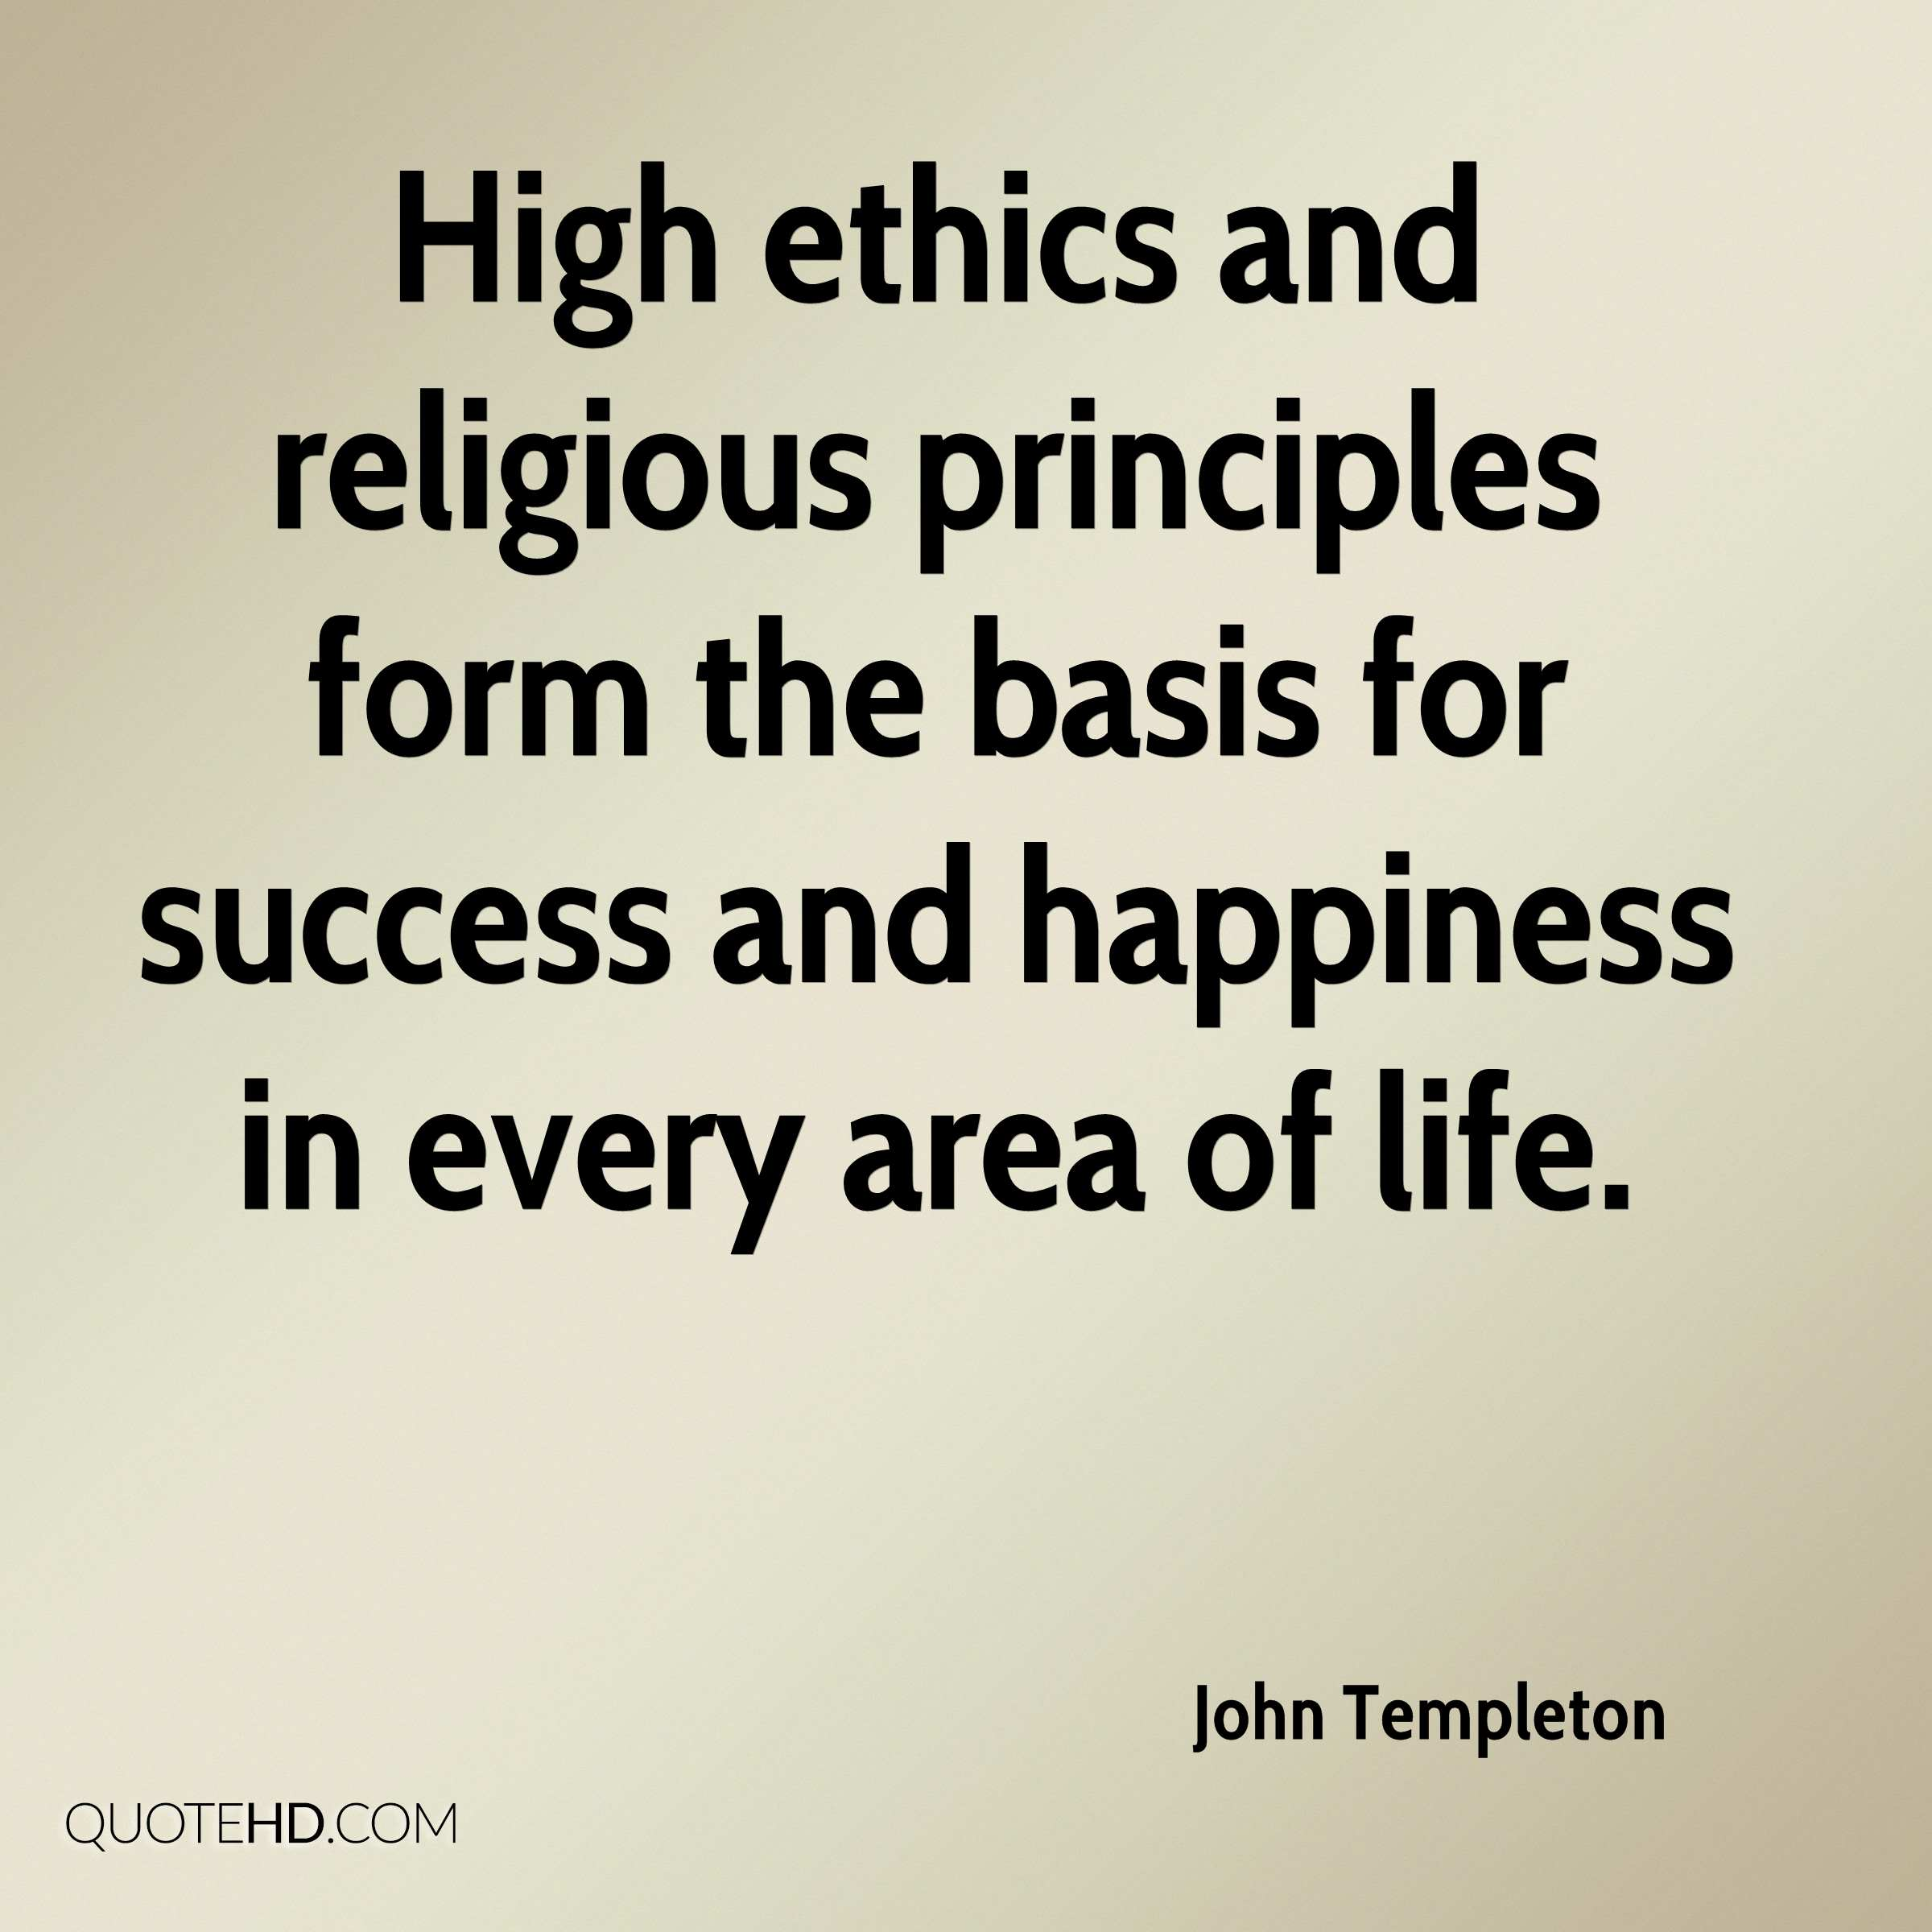 High ethics and religious principles form the basis for success and happiness in every area of life.